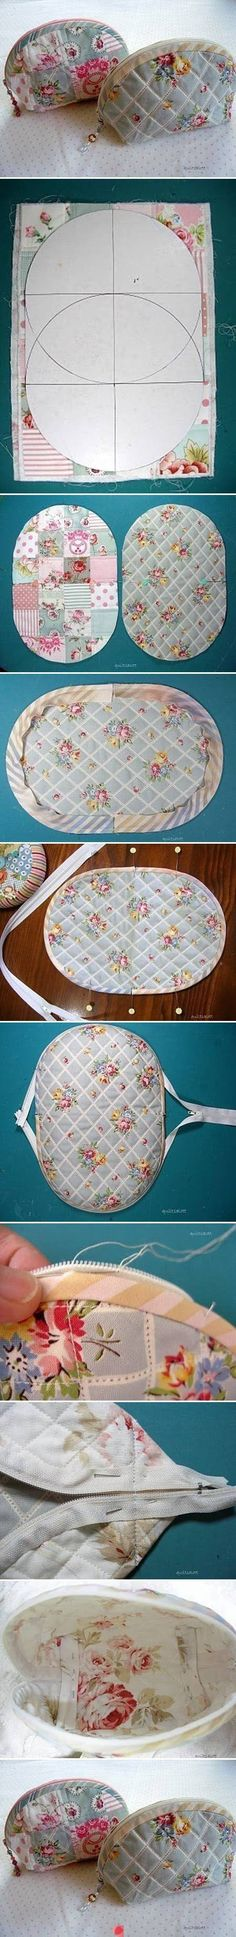 Cute little pouches nice for organizing things in purses or knitting bags.: